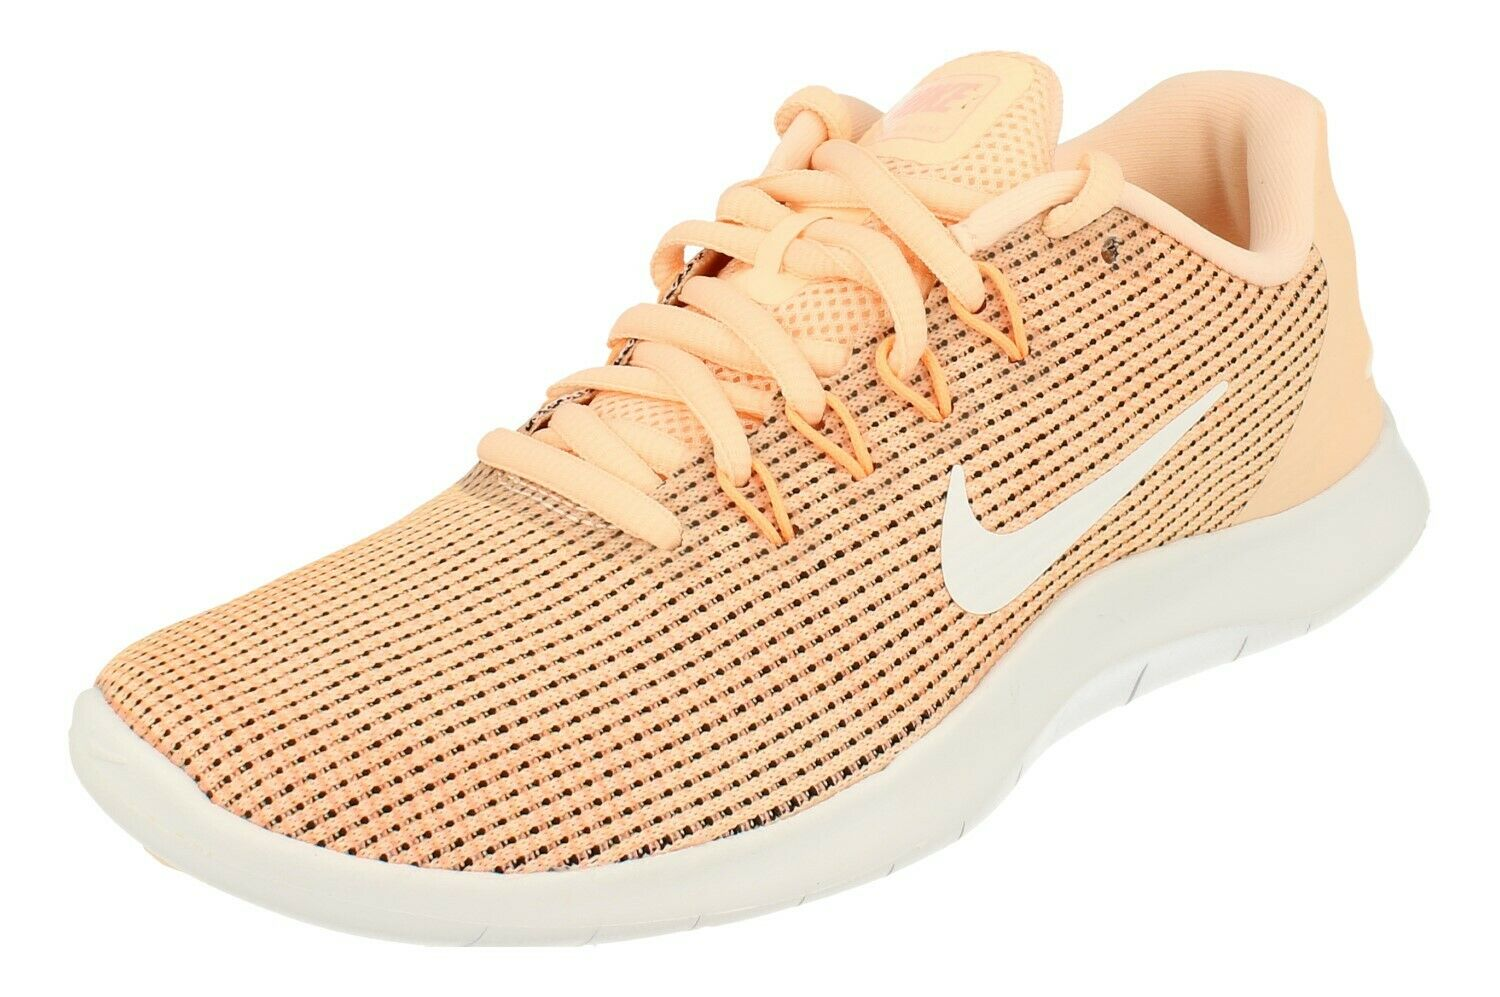 Nike Womens Flex 2018 RN Running Trainers Aa7408 Sneakers shoes 800